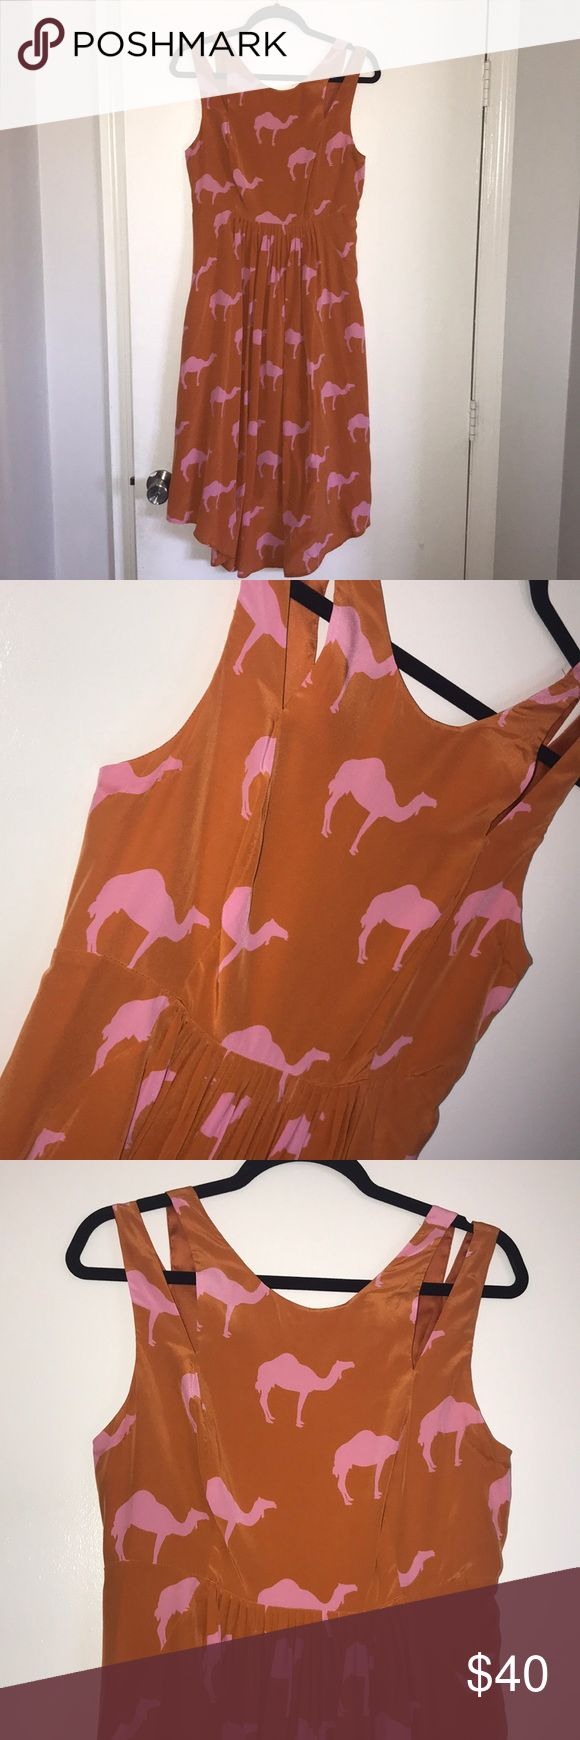 Summery flowy shift dress Super flowy, bright shift dress! Features a super fun pink camel print,  double split shoulder straps and an exposed zipper! Hem of dress is rounded for a casual or dressed up vibe! Would also be a super cute garden party dress! Worn once to my engagement party! Anthropologie Dresses Midi